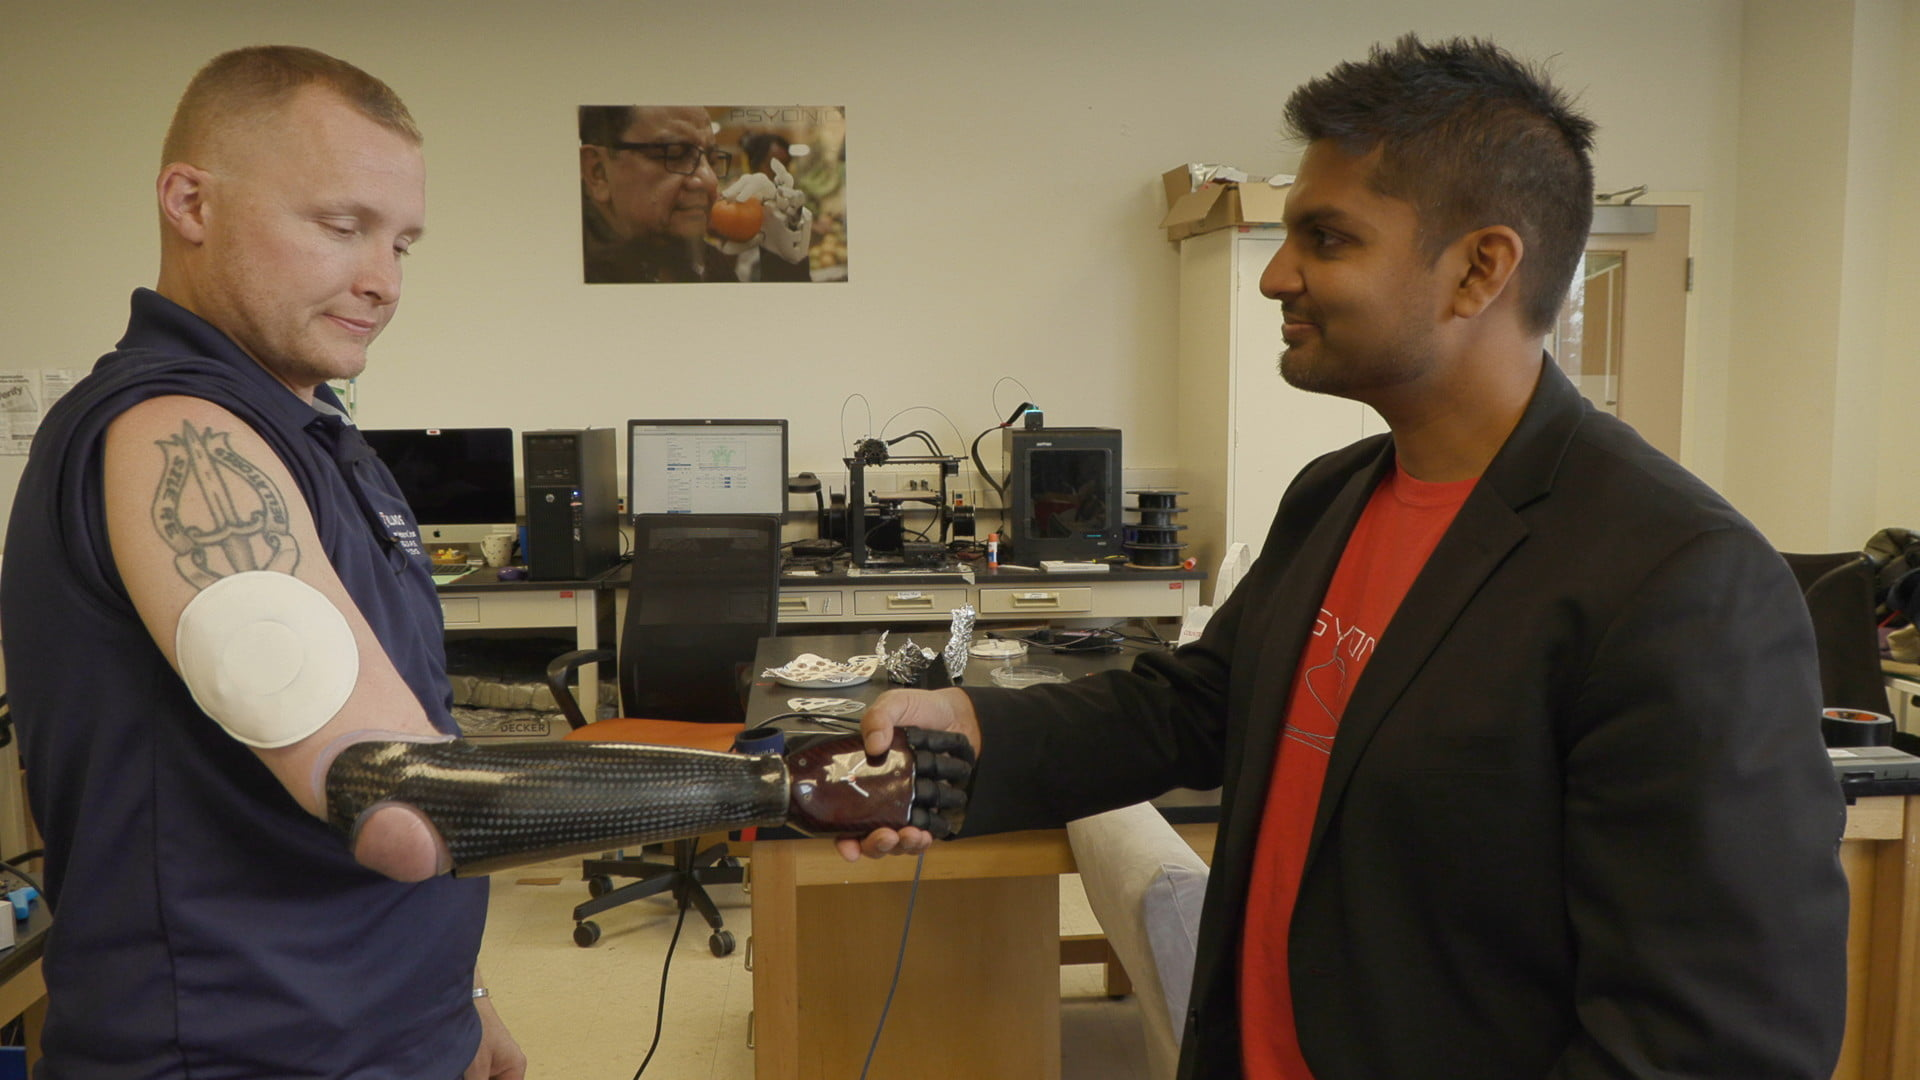 Flexible, wireless skin interface could restore amputees' sense of touch